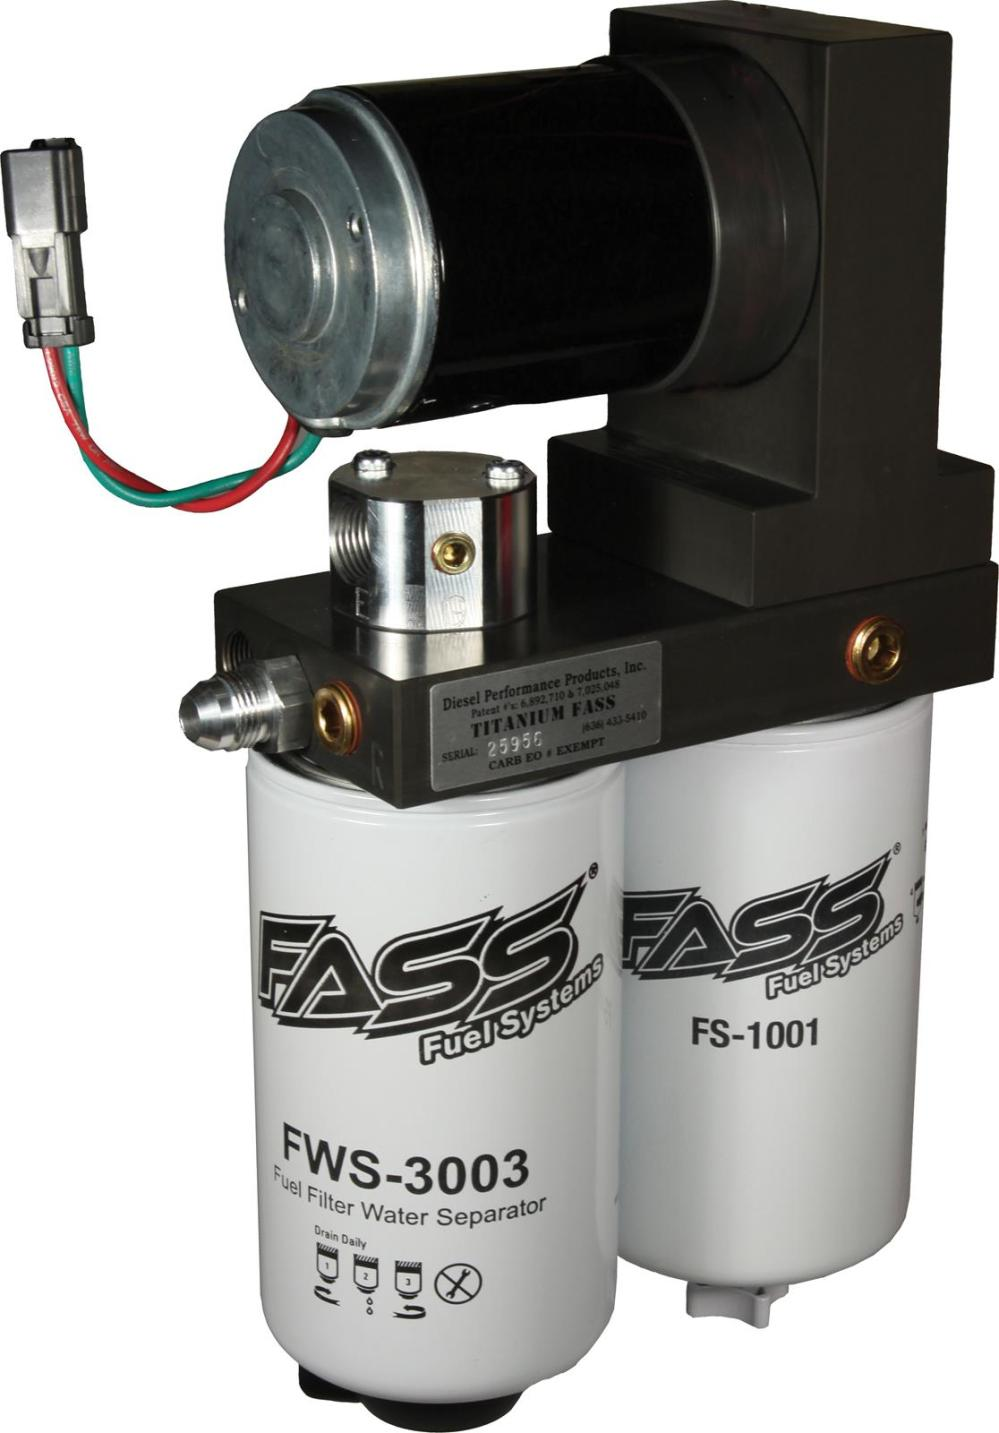 medium resolution of fass fuel systems titanium series fuel air separation systems t d08 150g free shipping on orders over 99 at summit racing